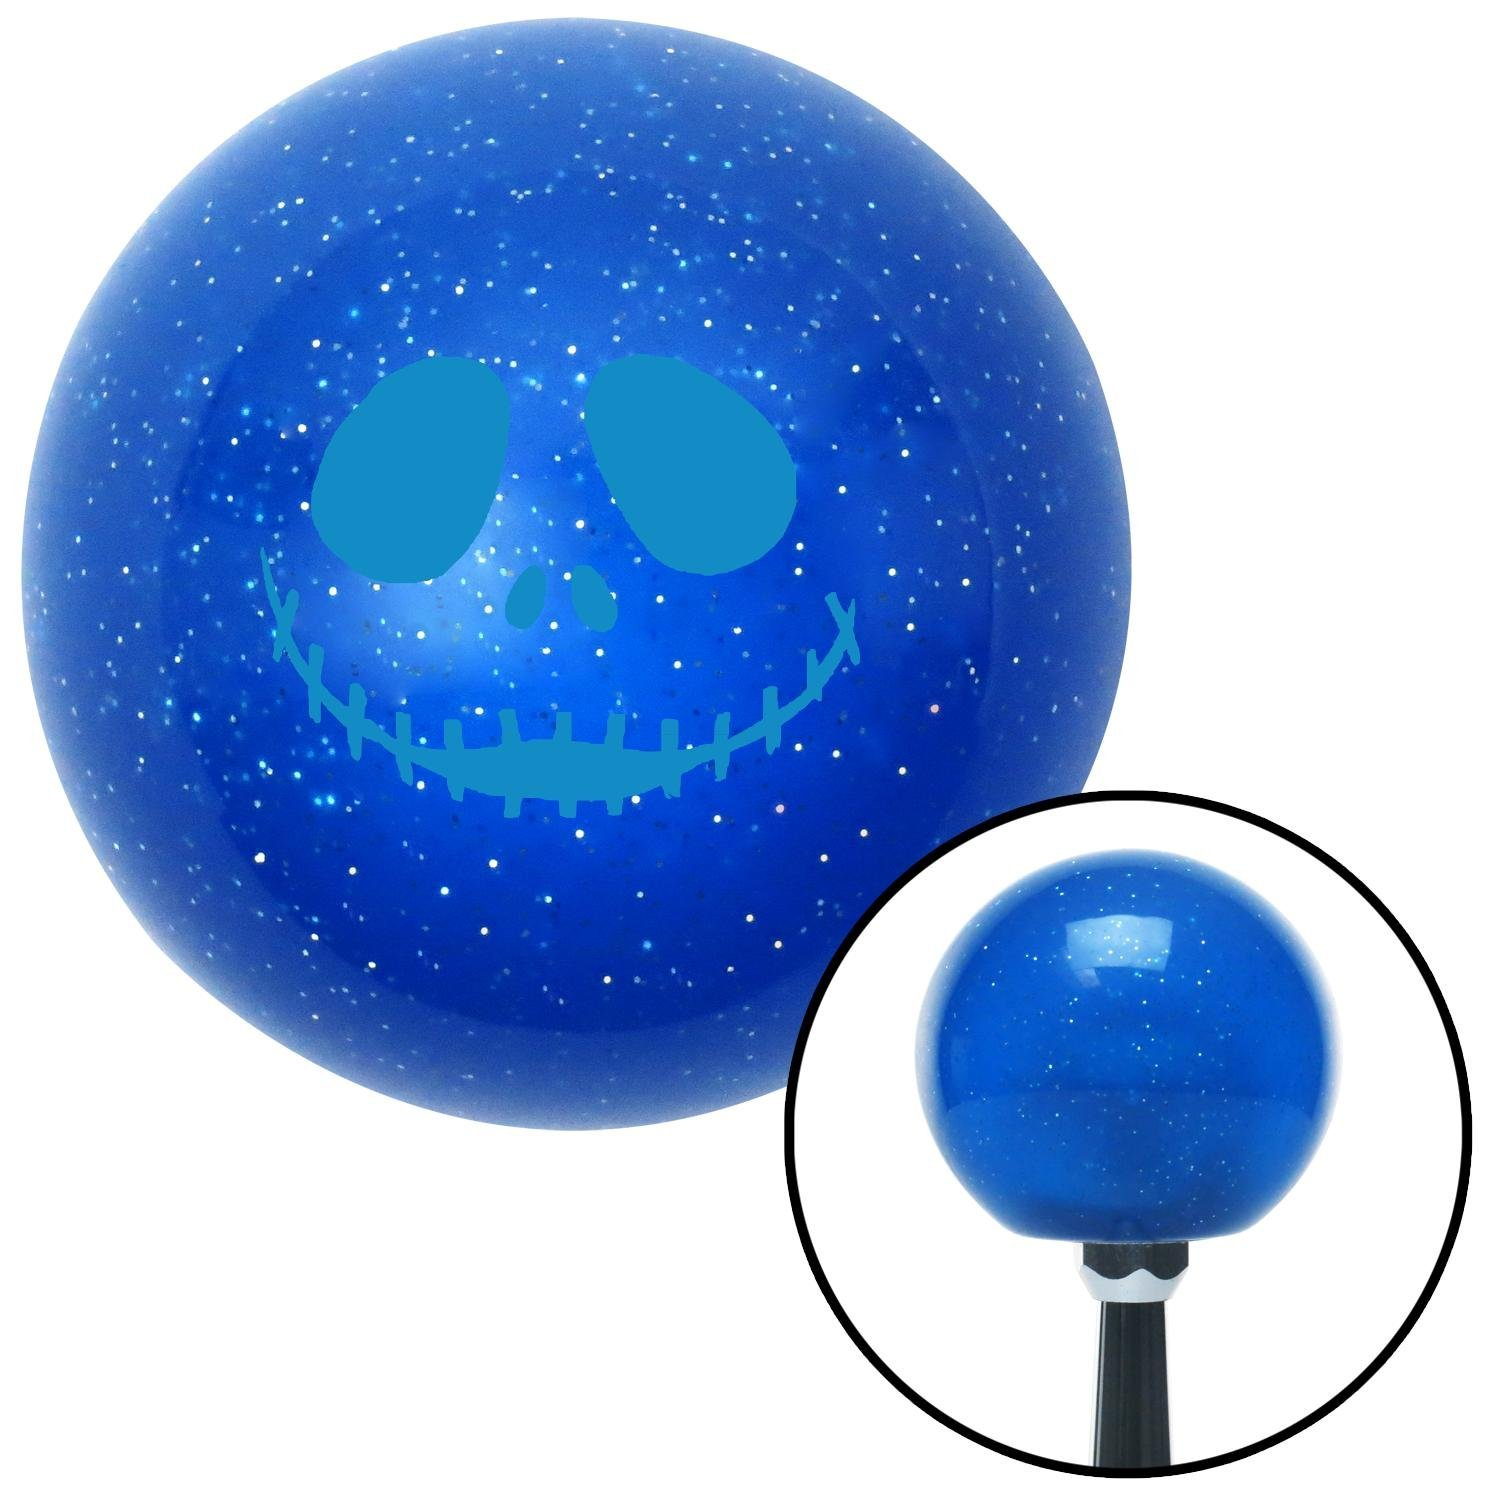 Blue Jack Zippered Mouth American Shifter 20458 Blue Metal Flake Shift Knob with 16mm x 1.5 Insert